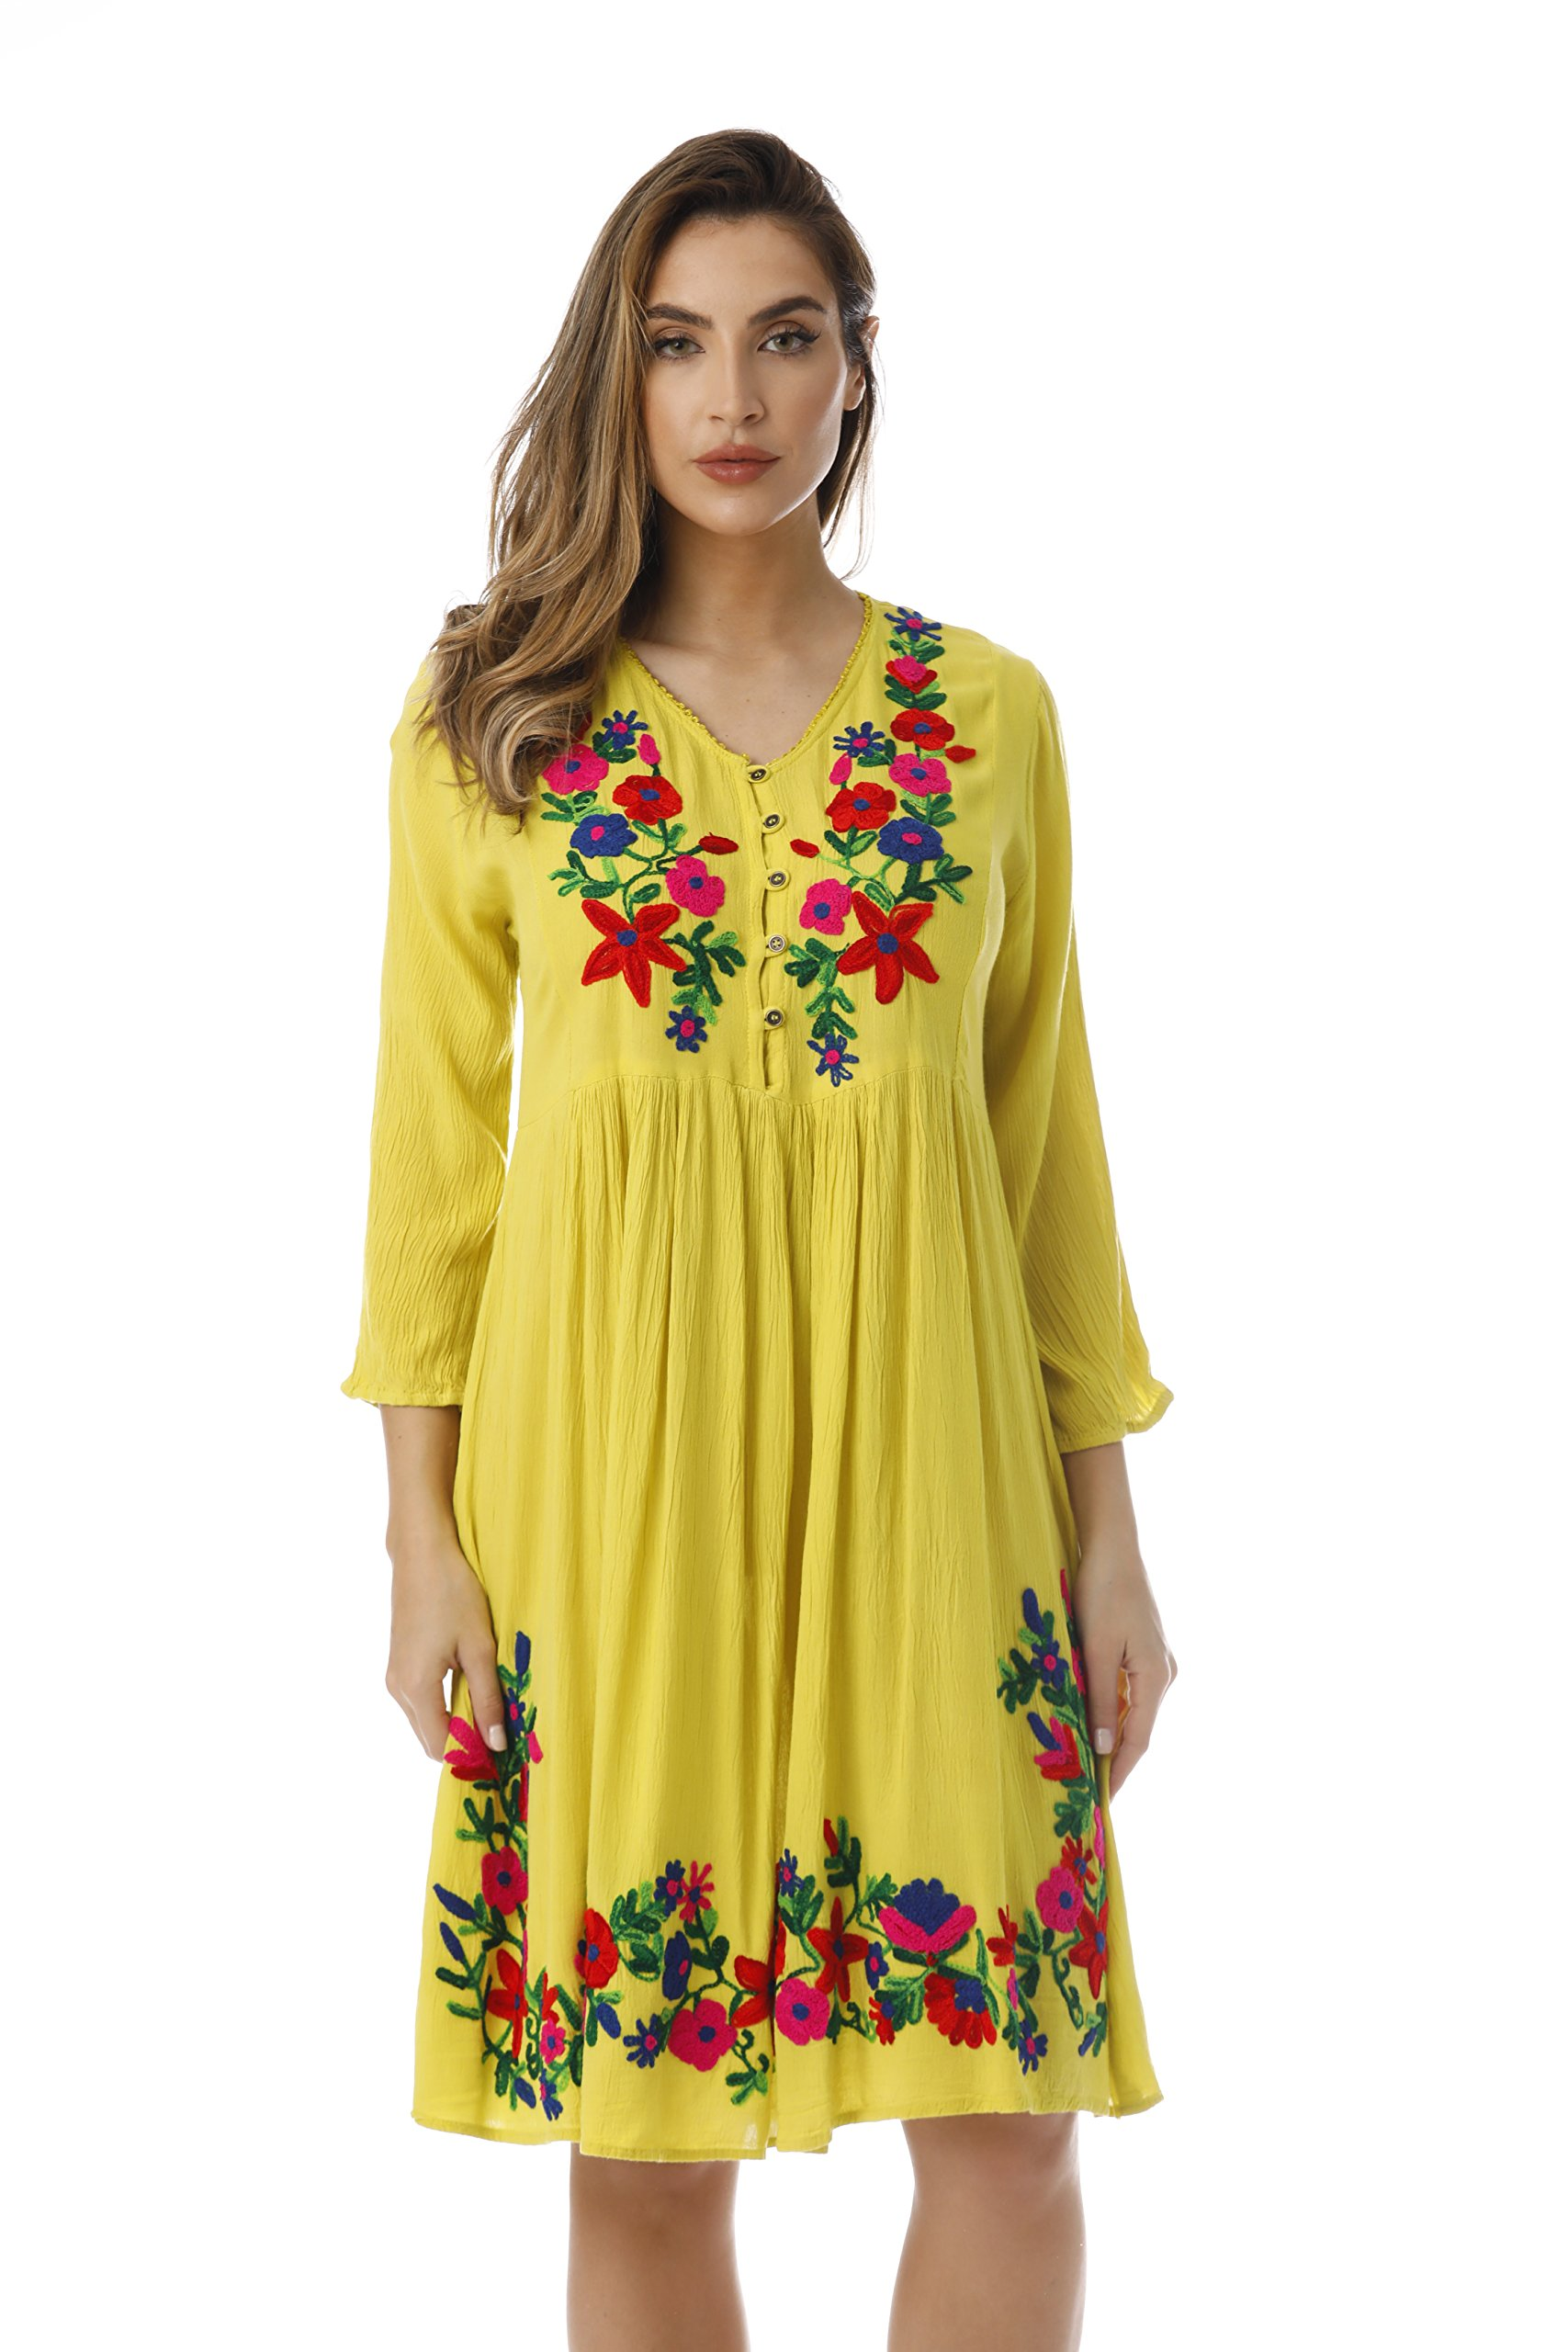 Available at Amazon: Riviera Sun Floral Embroidered 3/4 Sleeve Button Front Empire Waist Dress